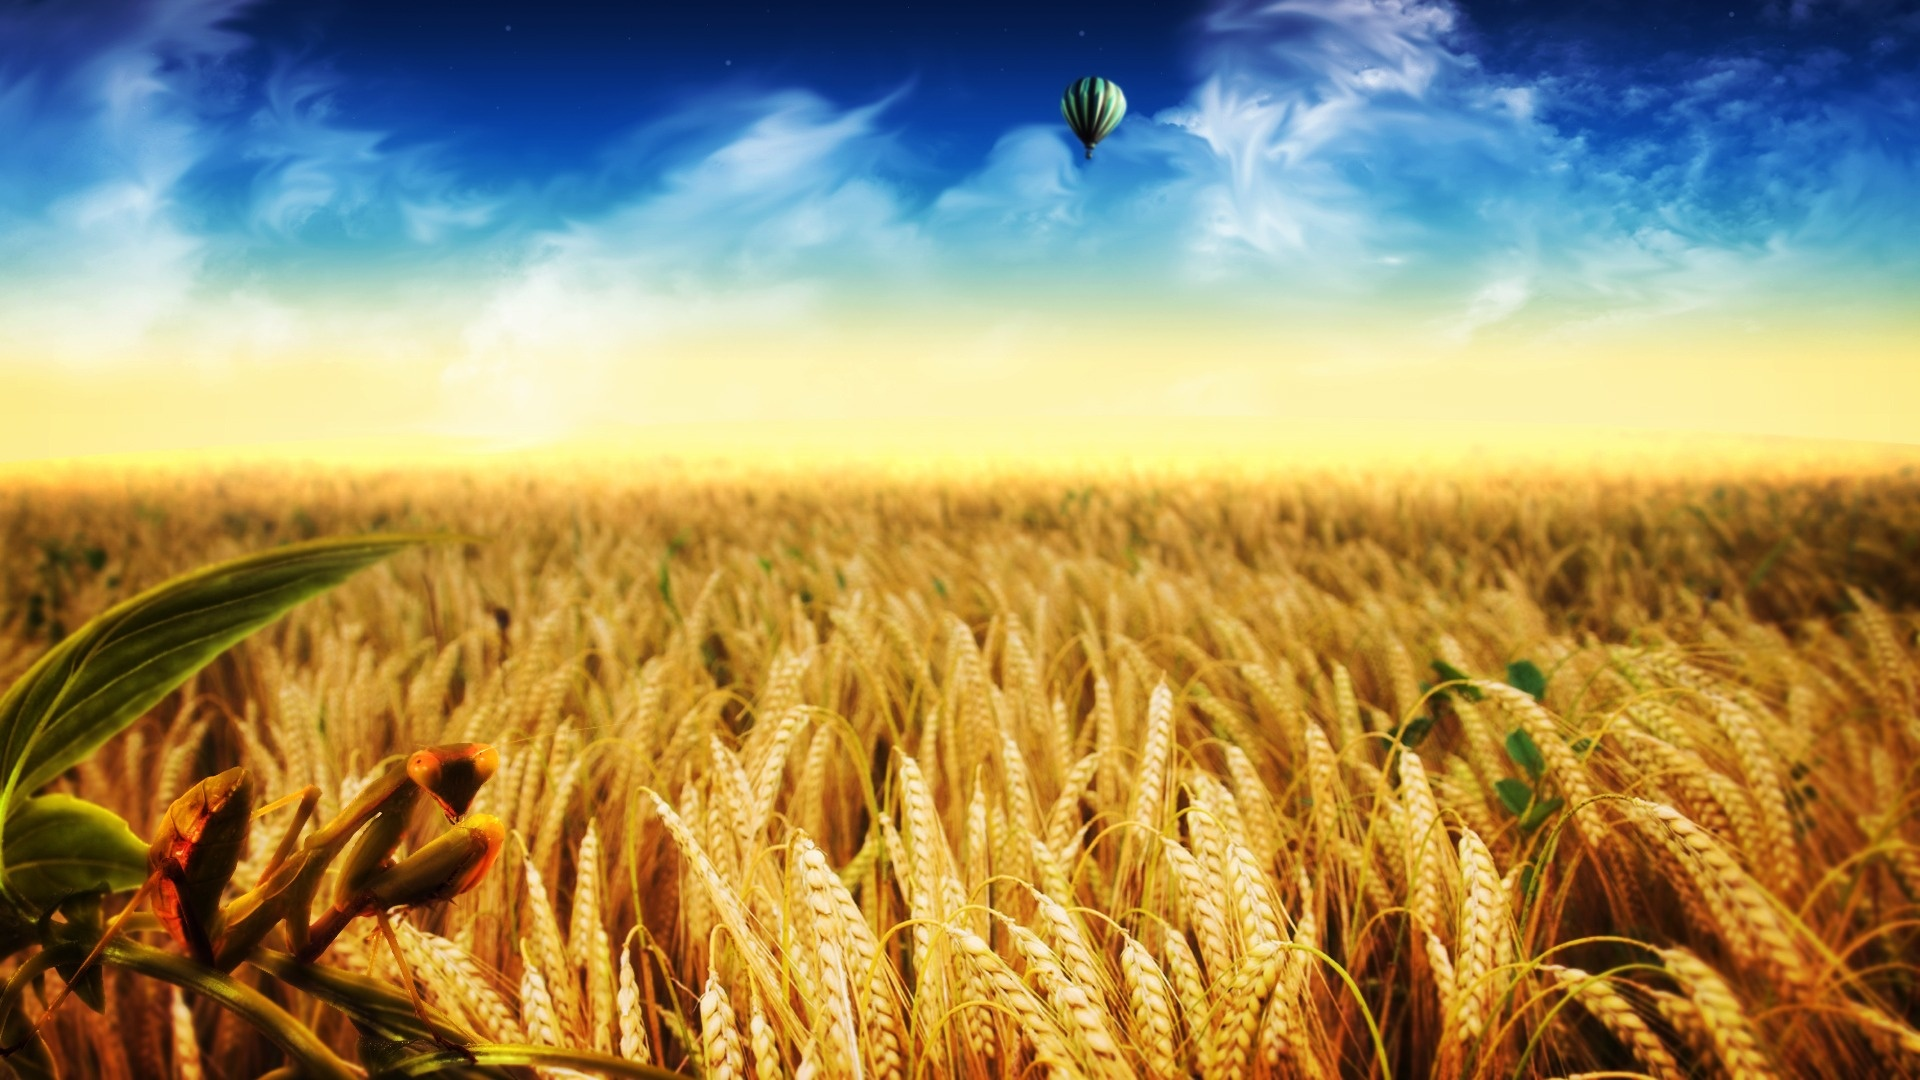 1 Cornfield HD Wallpapers | Backgrounds - Wallpaper Abyss